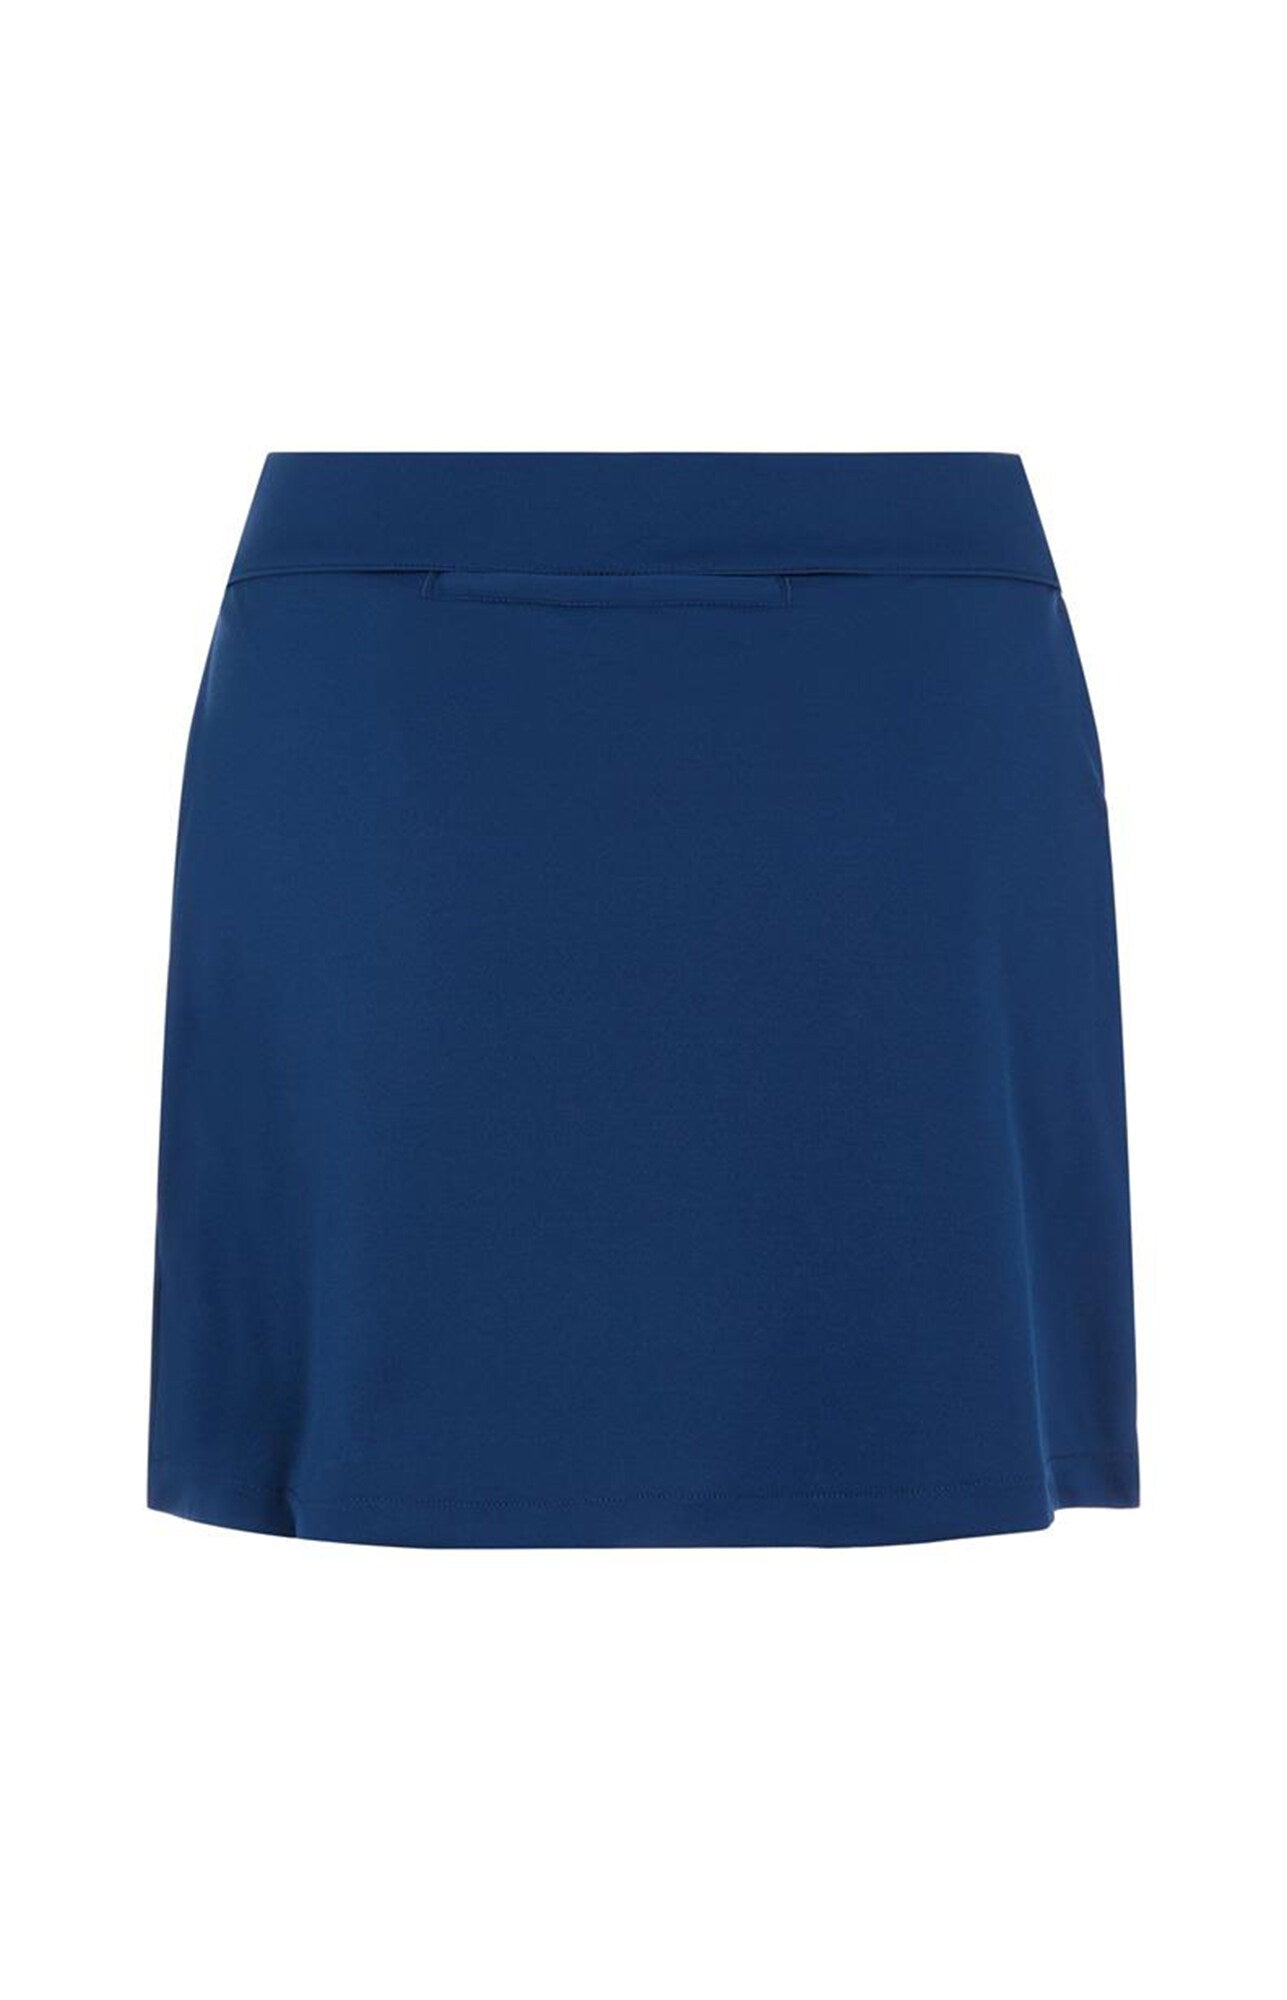 제이린드버그 테아 스커트 J Lindeberg Thea Golf Skirt -Midnight Blue